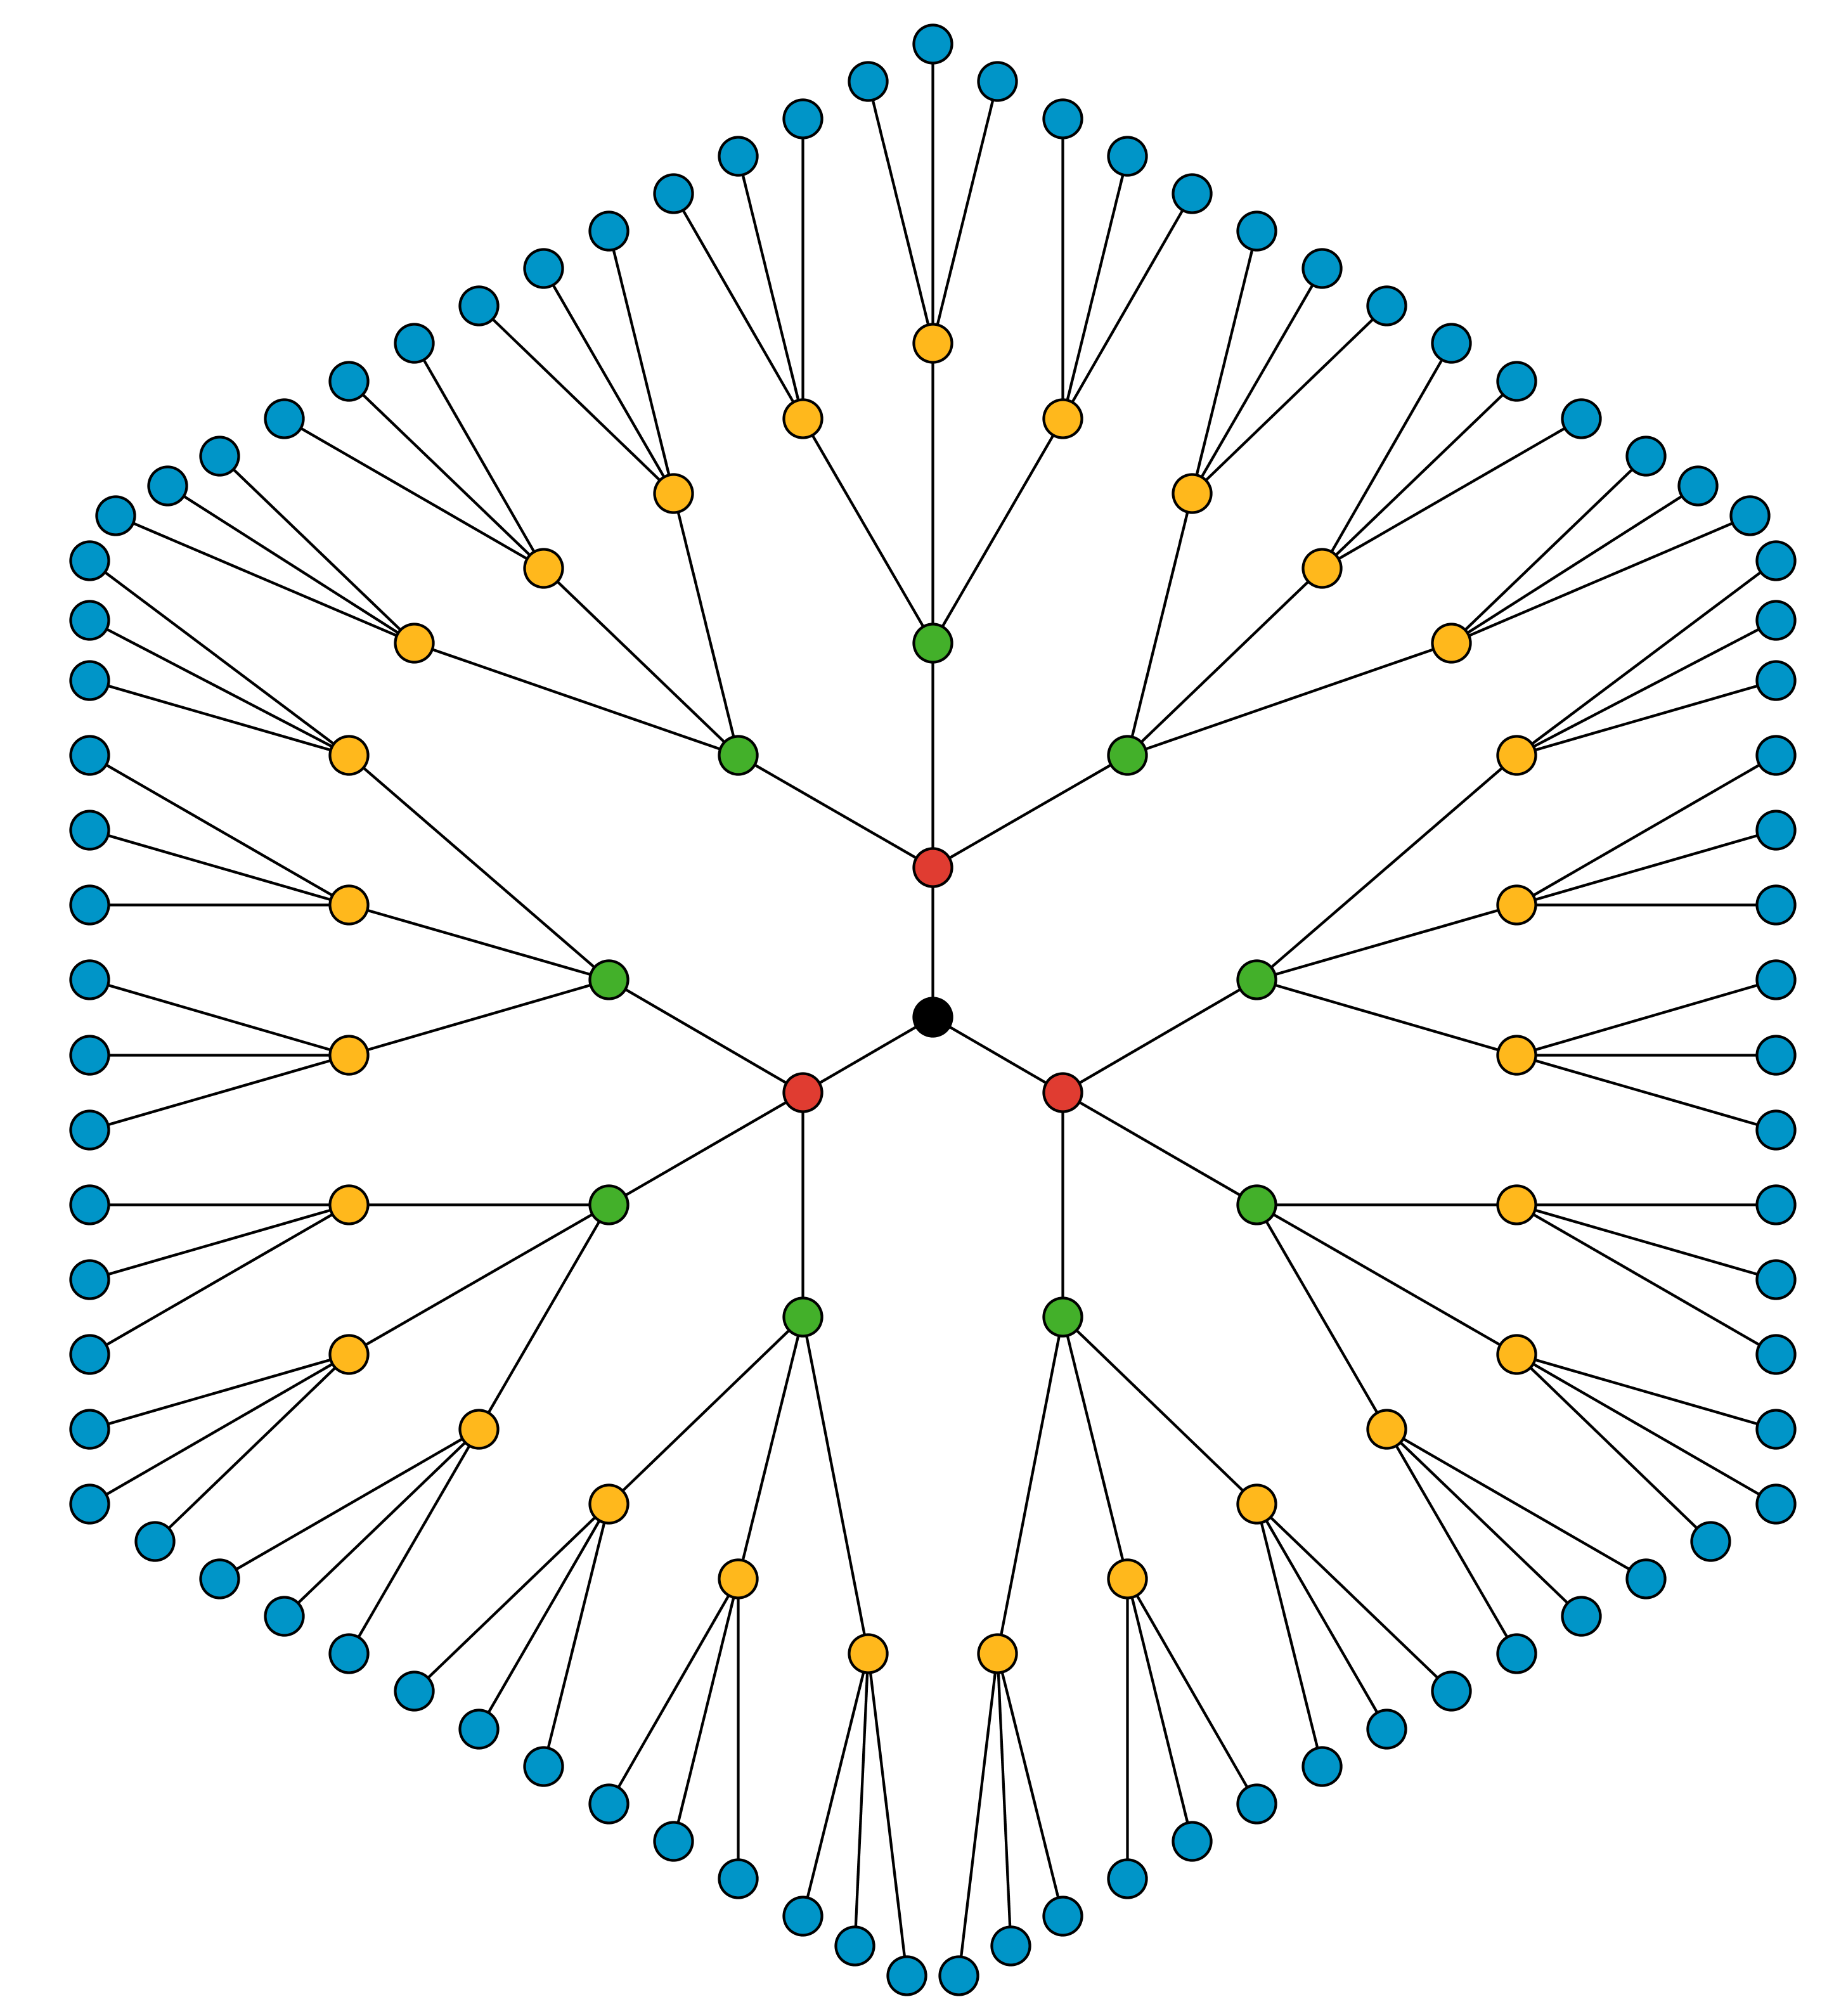 A figure of a series of dot branches. In the center is a black dot. Three branches extend from the black dot with one red dot at the end of each branch. There are three branches that extend from each red dot with one green dot at the end of each branch. There are three branches that extend from each green dot with one yellow dot at the end of each branch. There are three branches that extend from each yellow dot with one blue dot at the end of each branch.